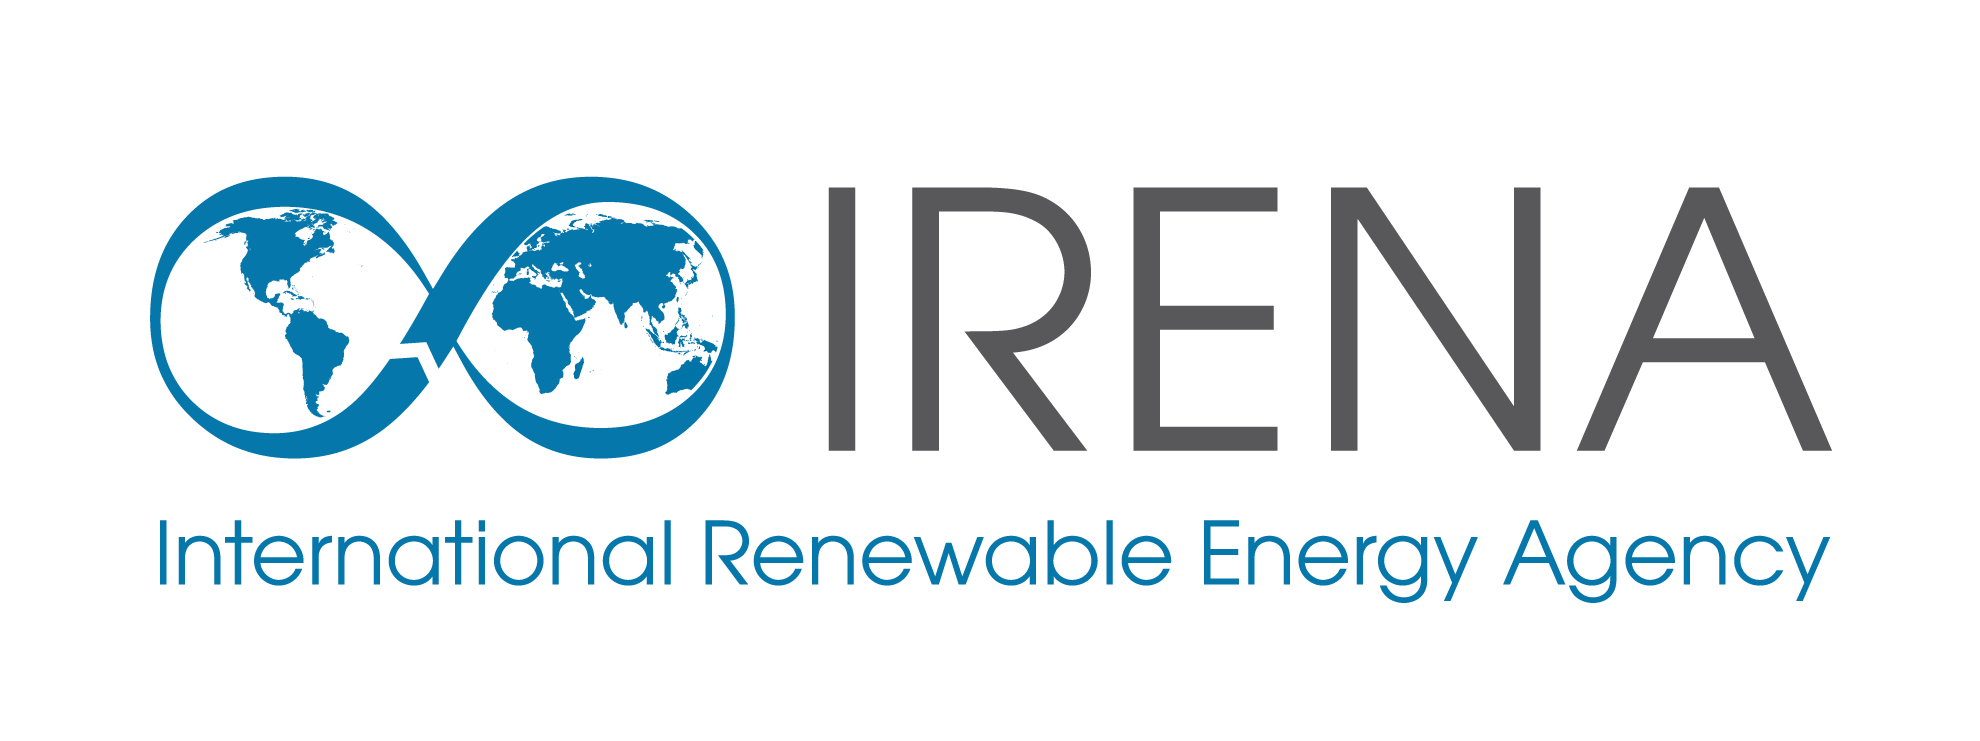 International Renewable Energy Agency Logo